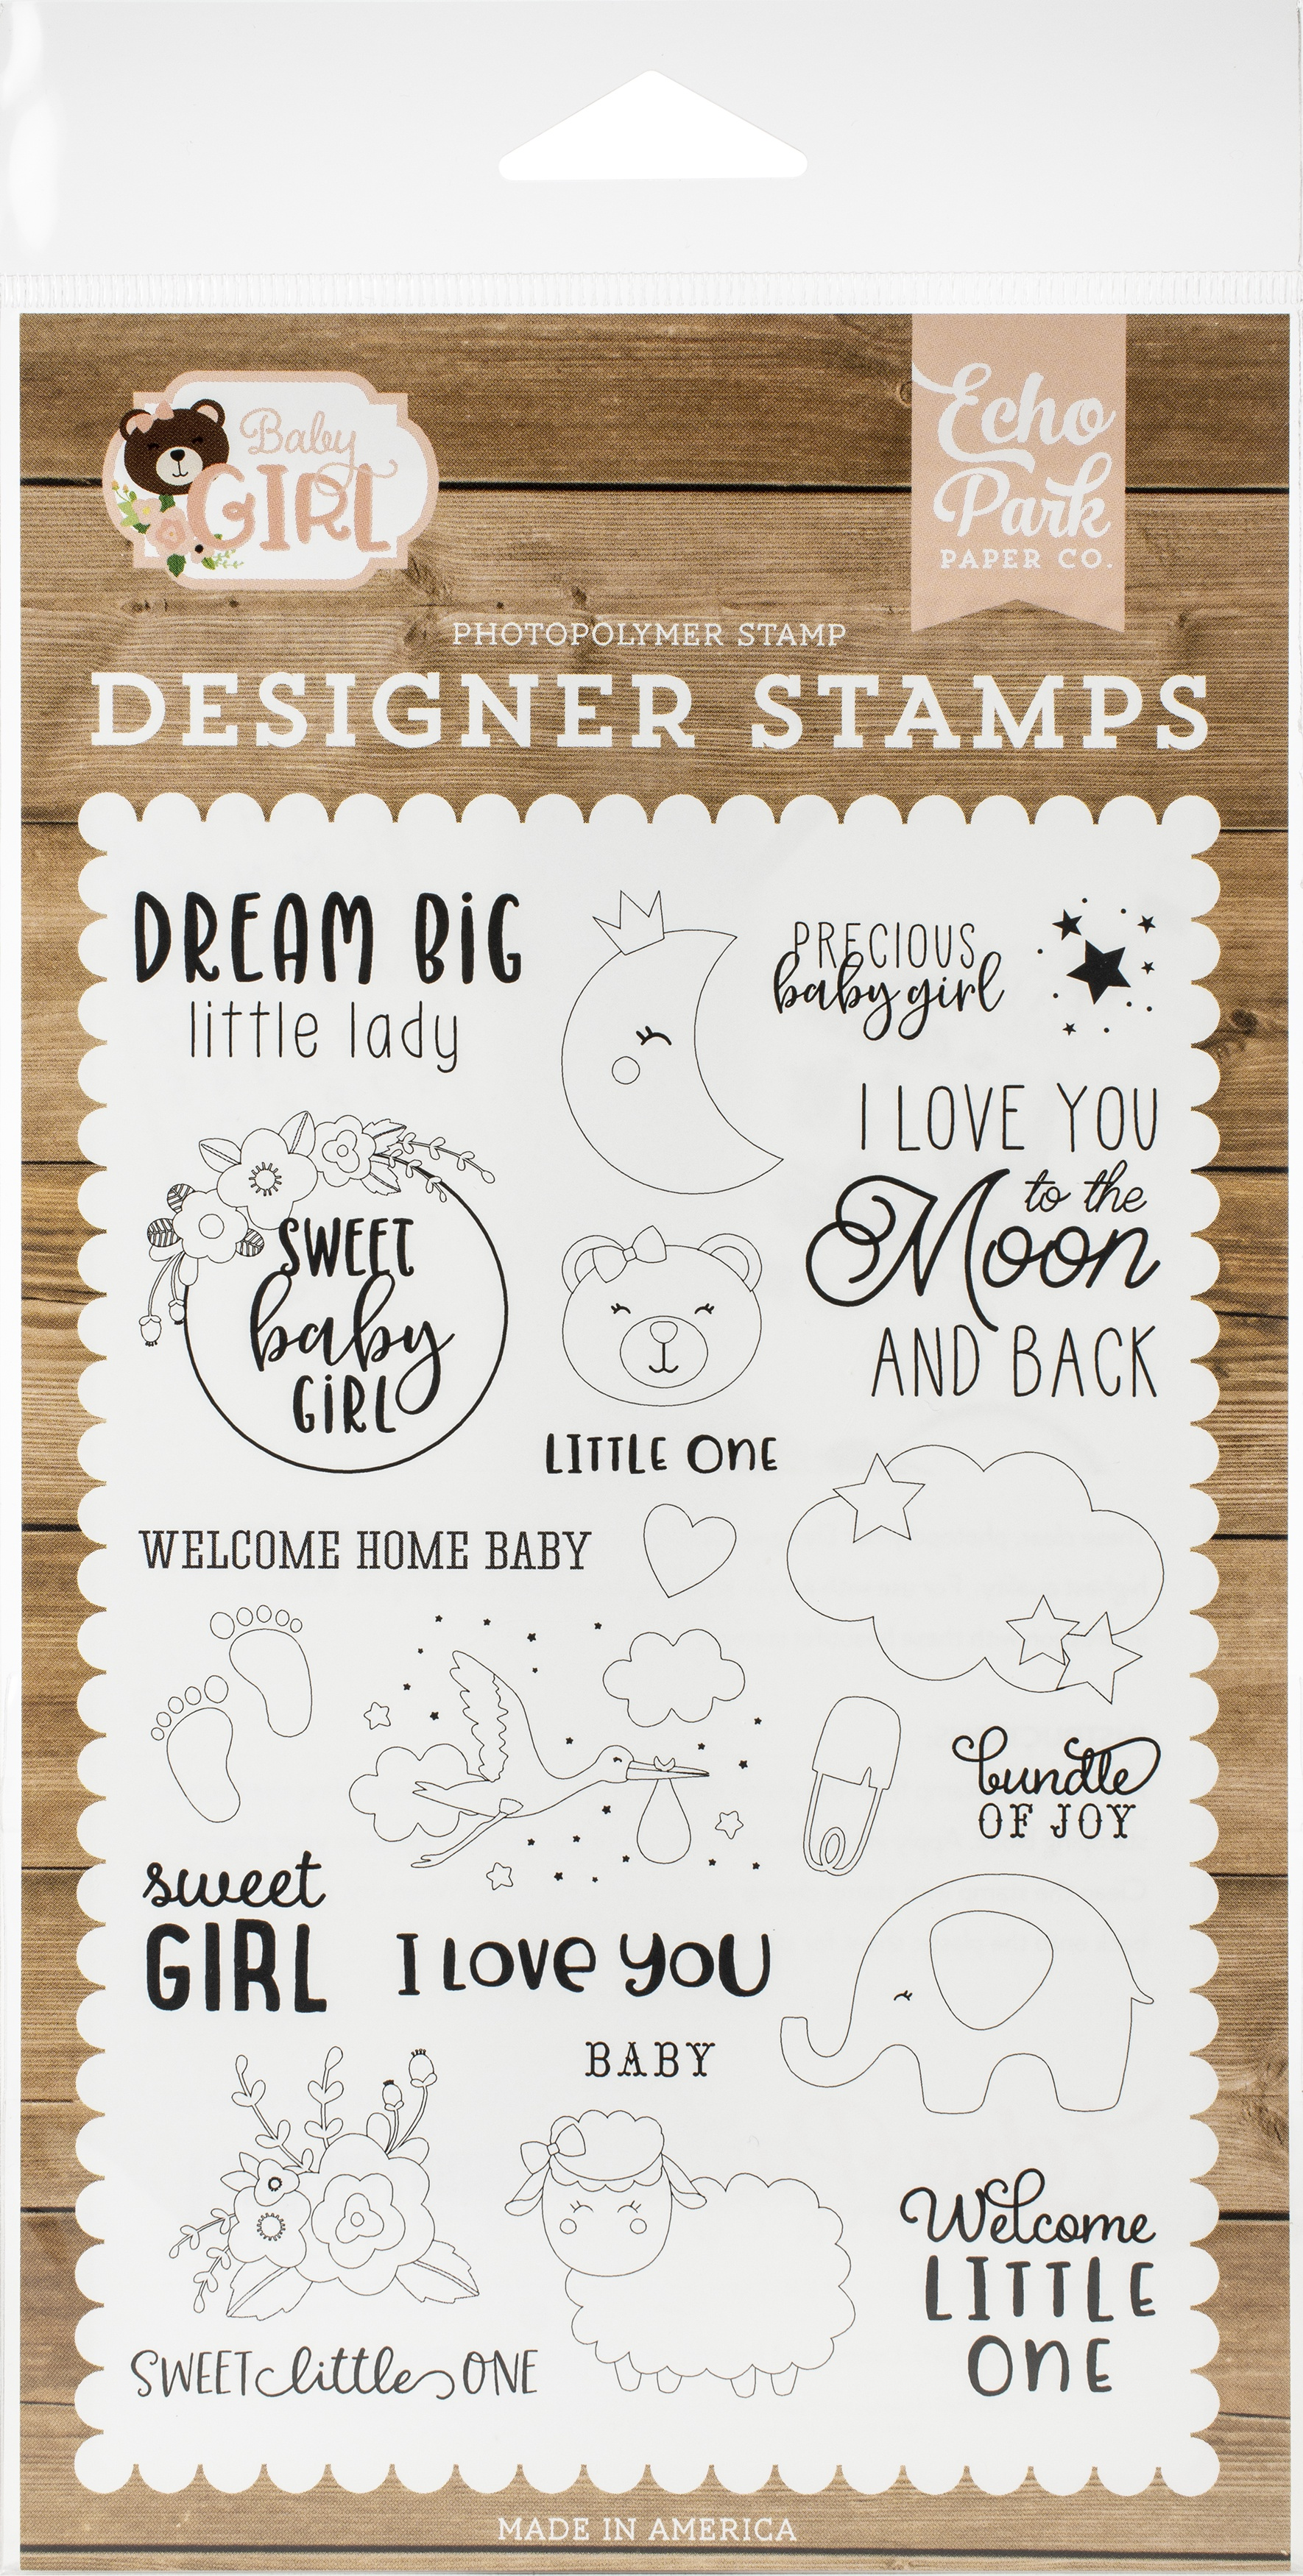 Echo Park Stamps-Dream Big Little Lady, Baby Girl